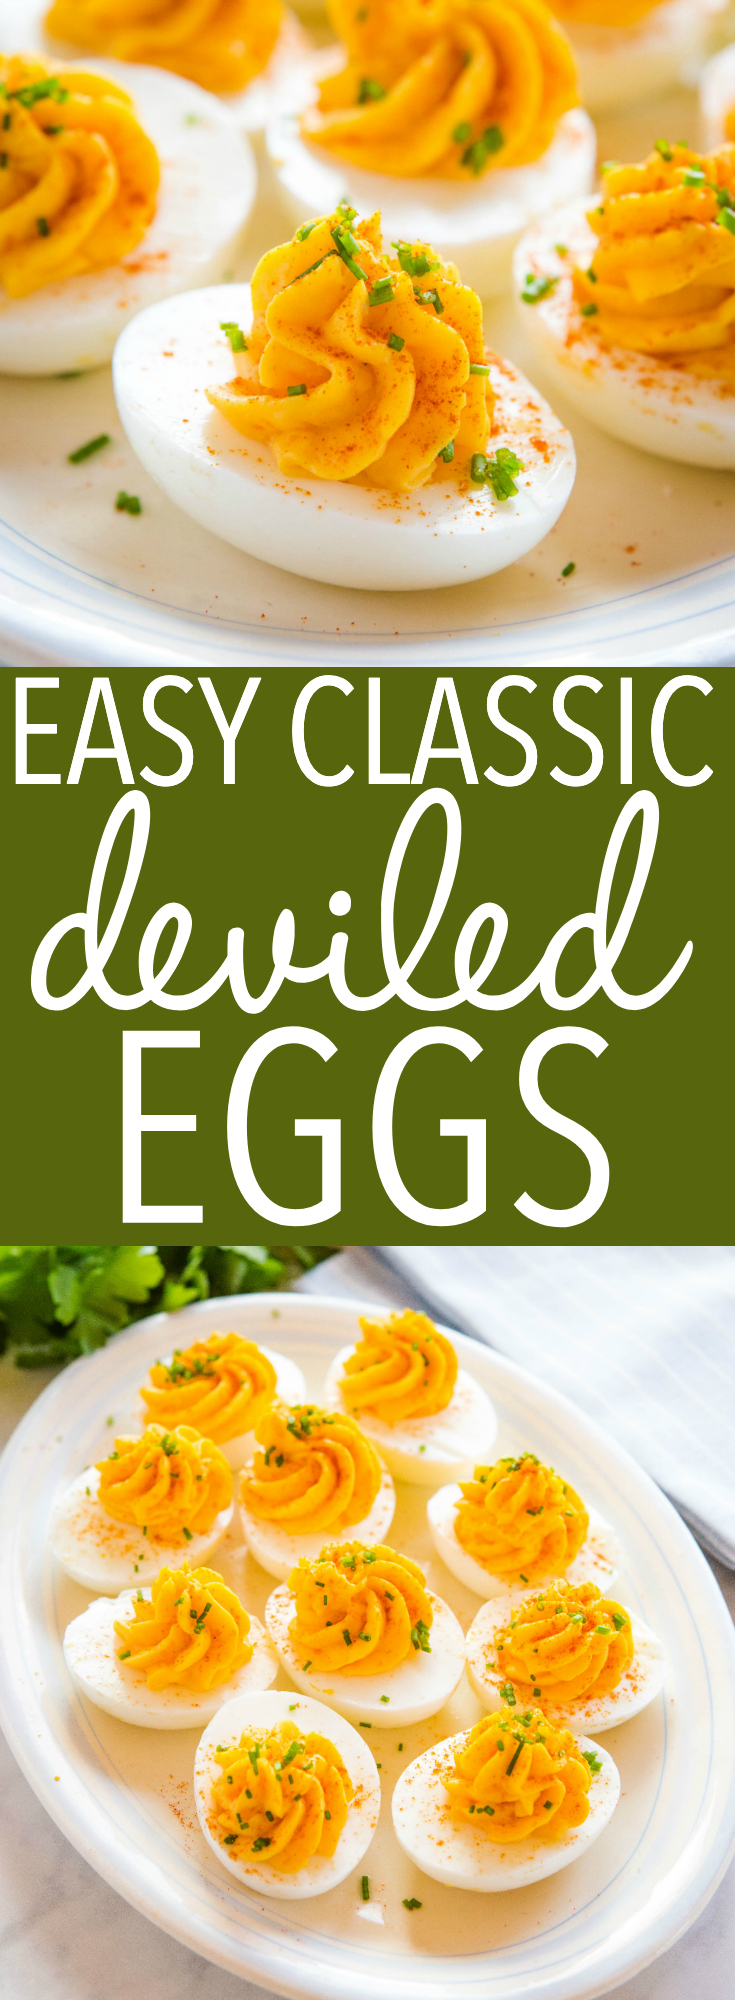 These Easy Classic Deviled Eggs are perfect for Easter or a summer party! Ultra creamy filling with traditional deviled egg flavours - easy to make in under 30 minutes! Follow my tips for the BEST hard boiled eggs ever! Recipe from thebusybaker.ca! #deviledeggs #appetizer #easter #snack #easterbunny #summer #picnic #barbecue #homemade #hardboiledeggs #protips #recipetutorial via @busybakerblog